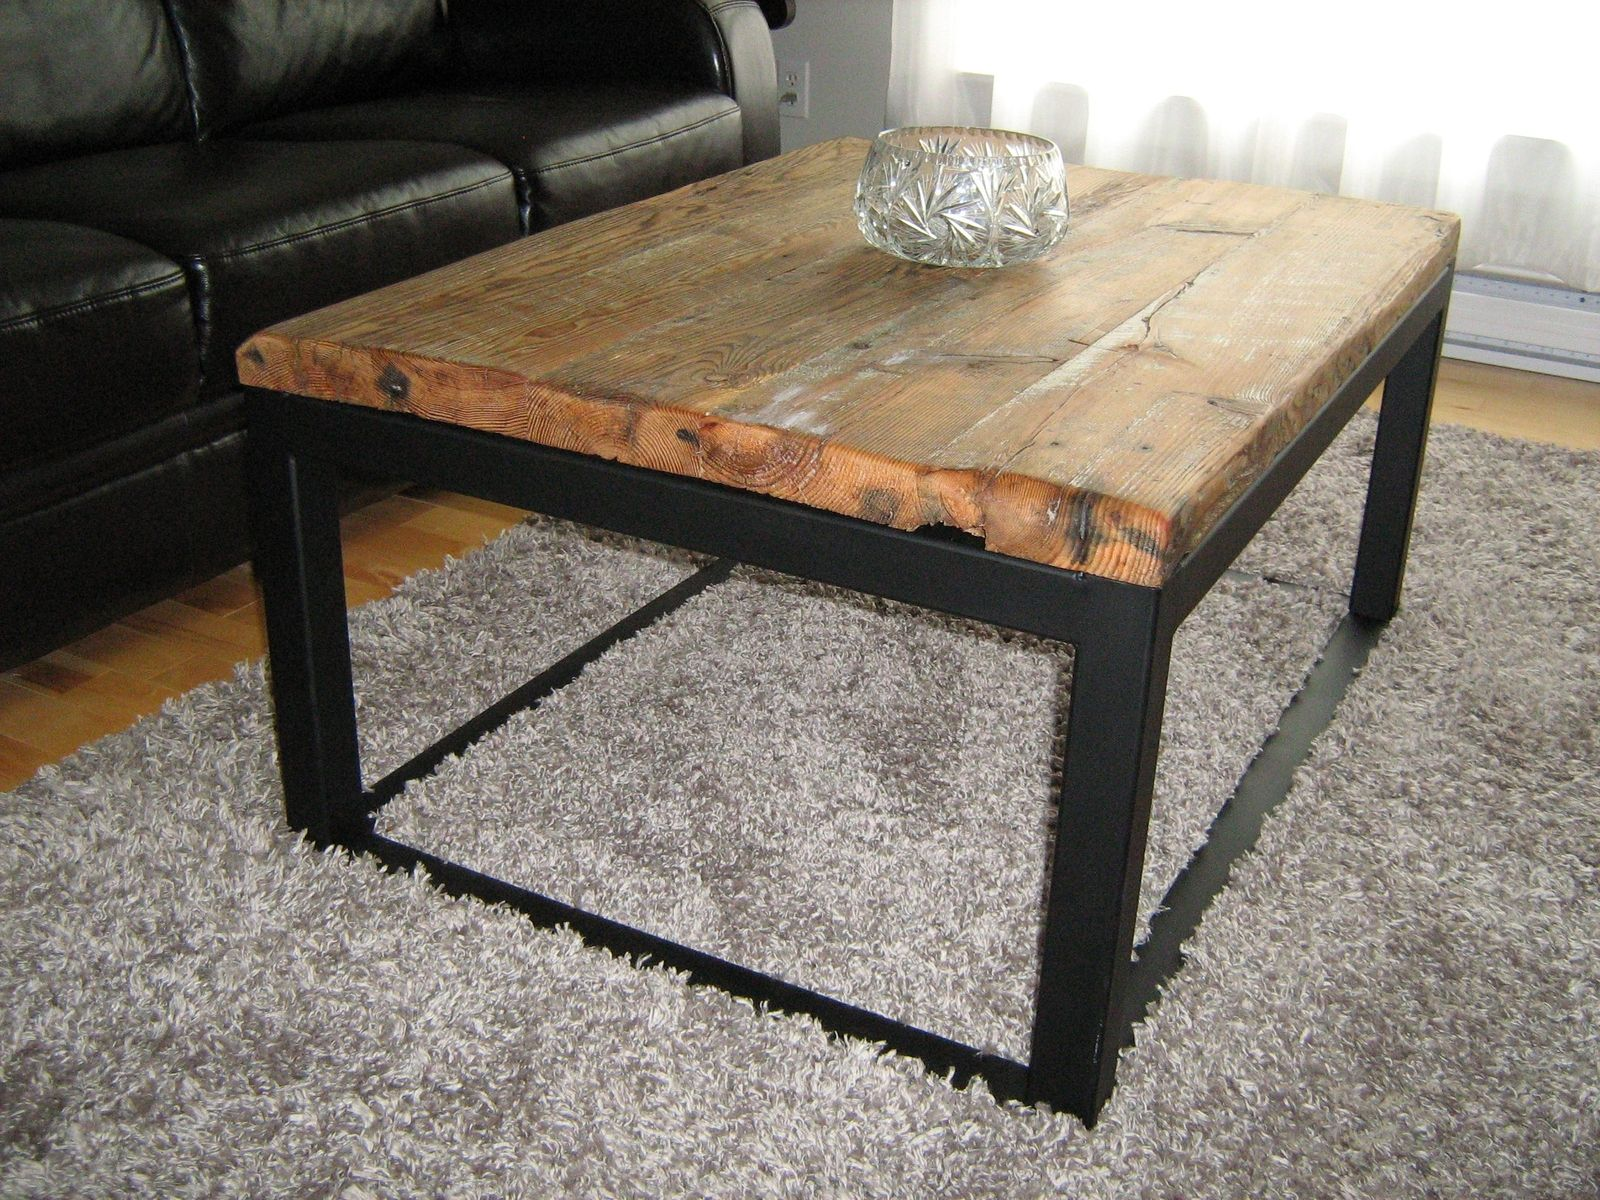 Custom Wood And Iron Coffee Table by Baywood Custom  : 88192237143 from www.custommade.com size 1600 x 1200 jpeg 404kB